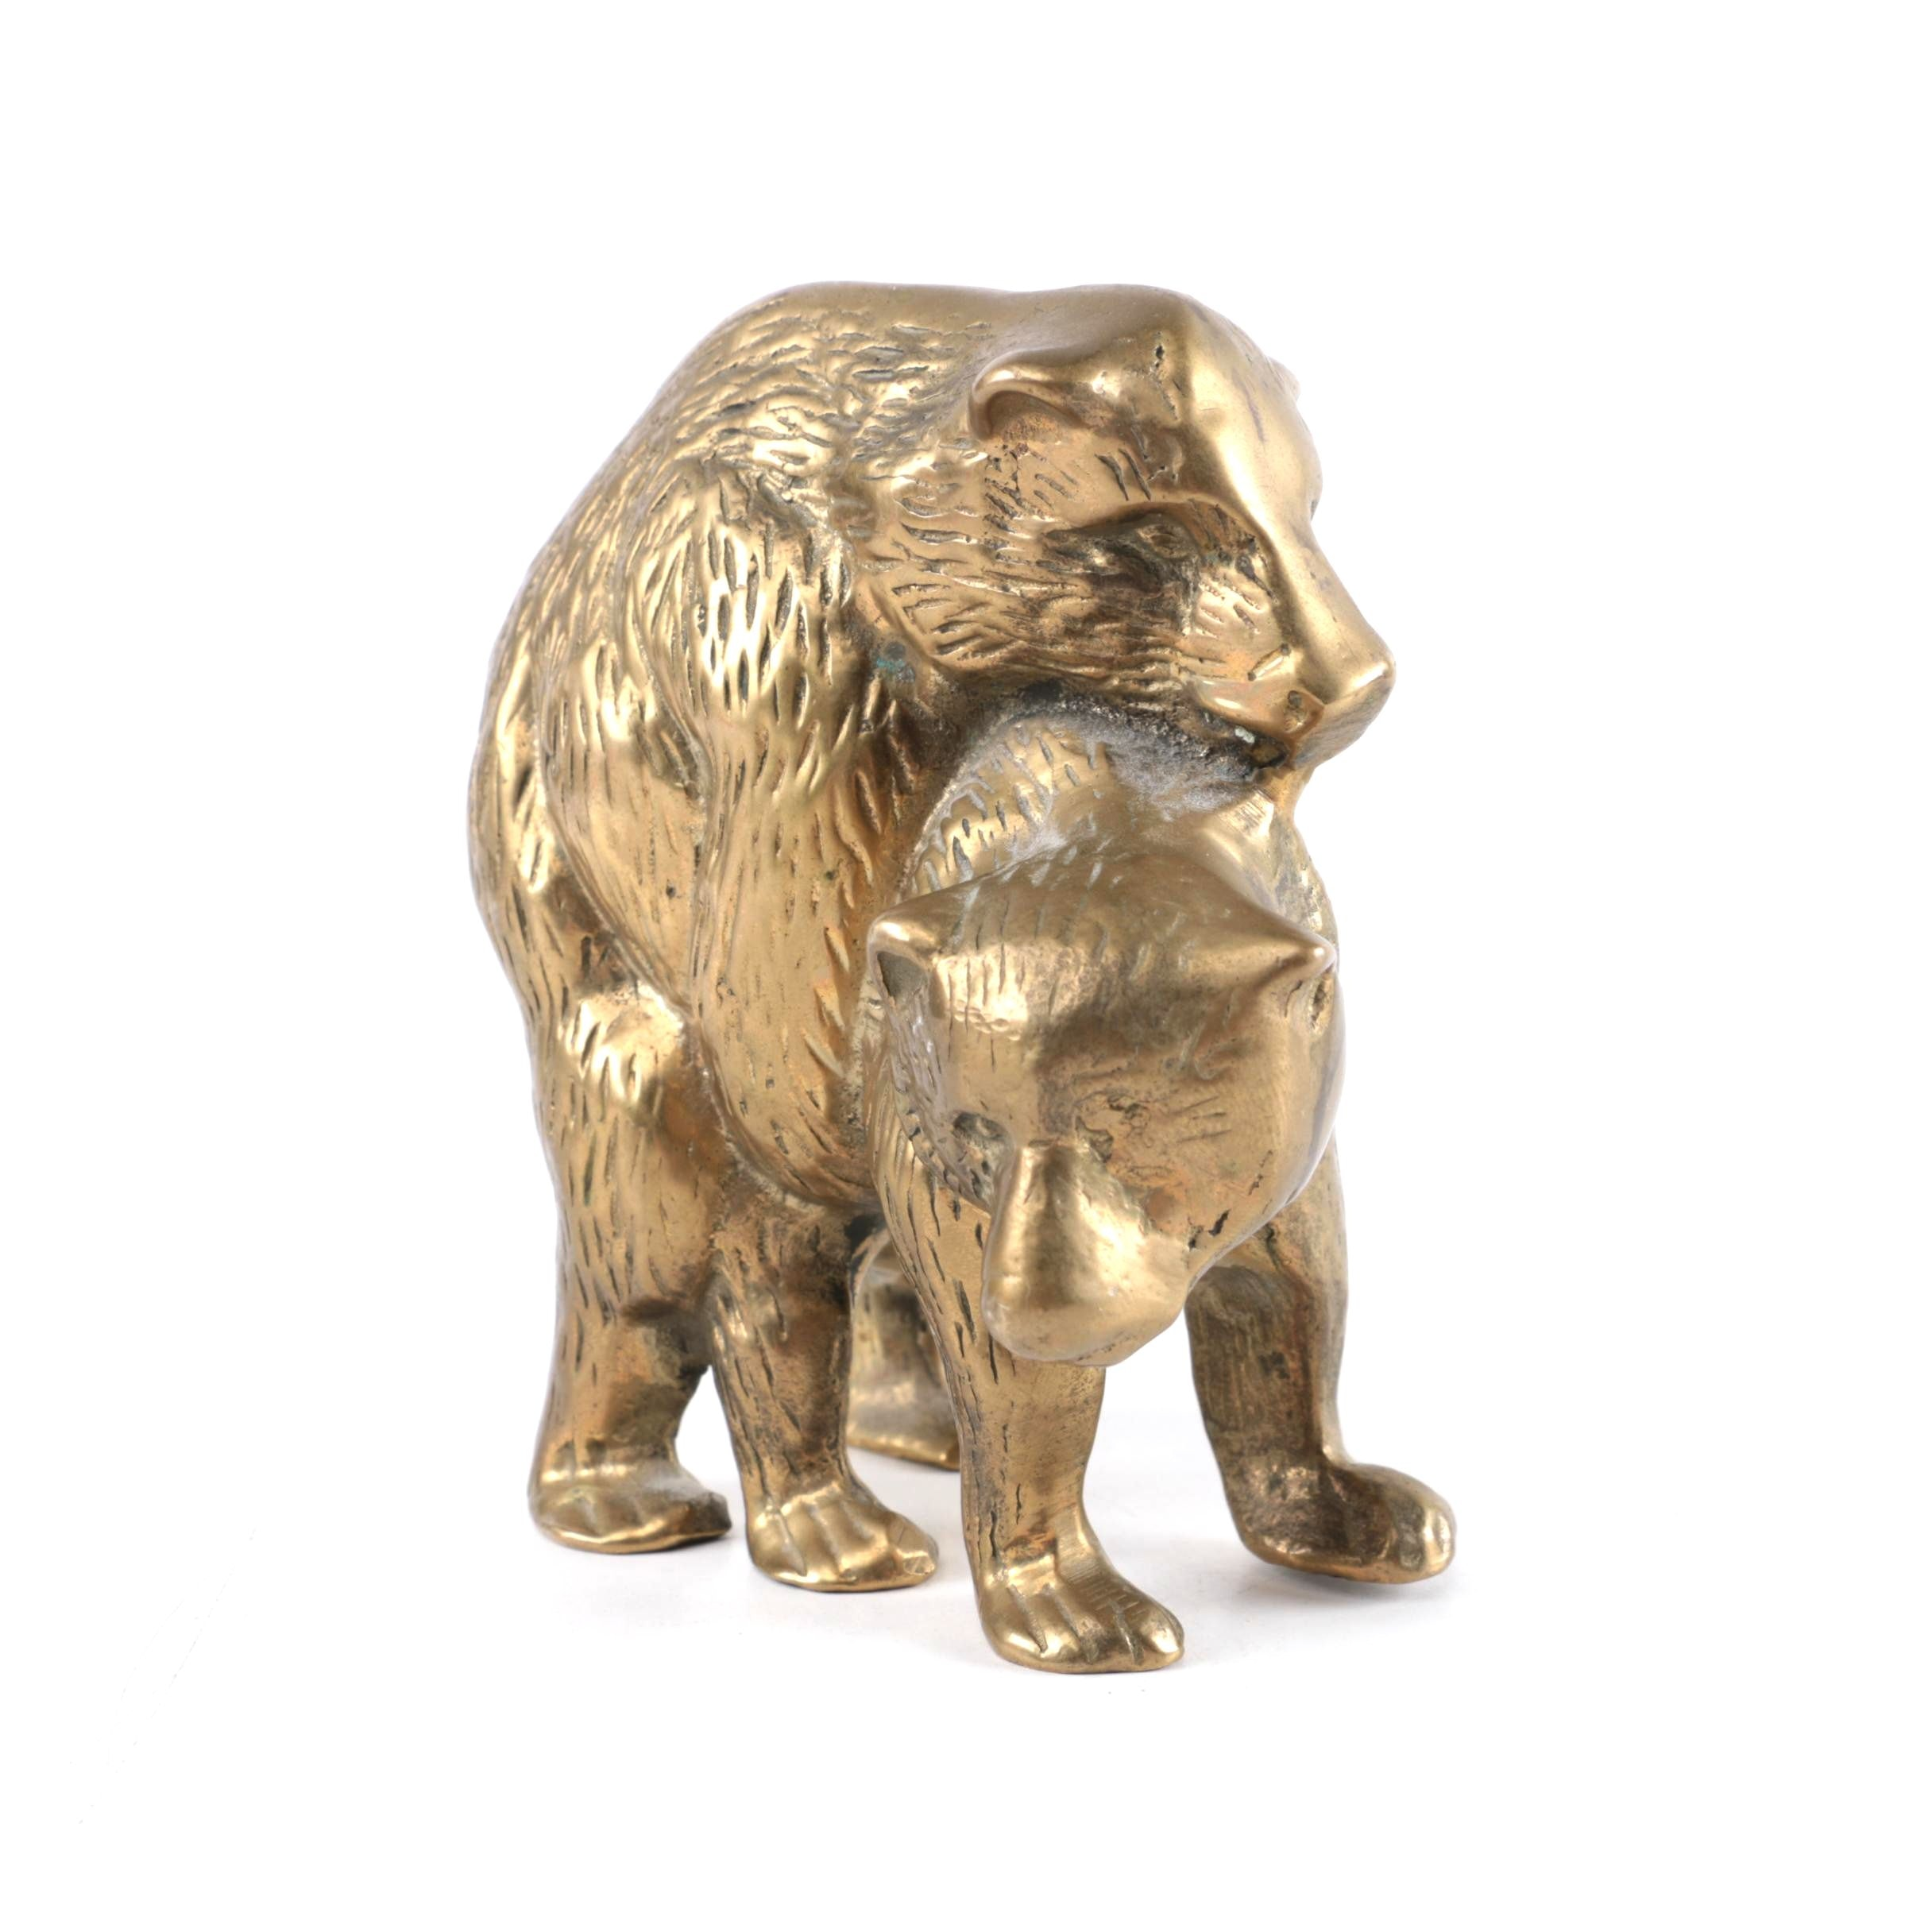 Brass Figurine of Two Mating Bears